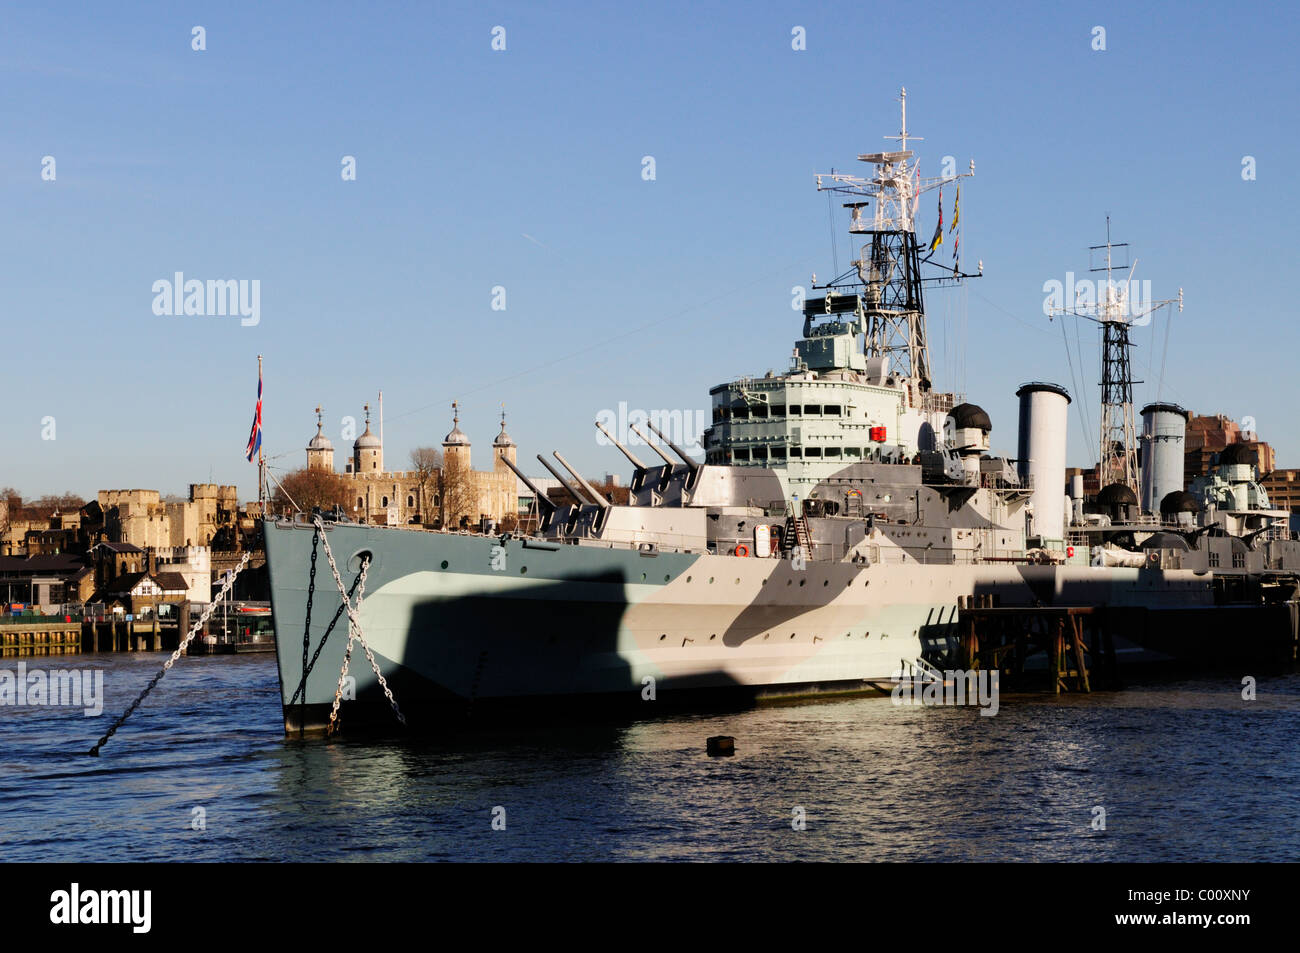 HMS Belfast with the Tower of London in the background, London, England, Uk - Stock Image